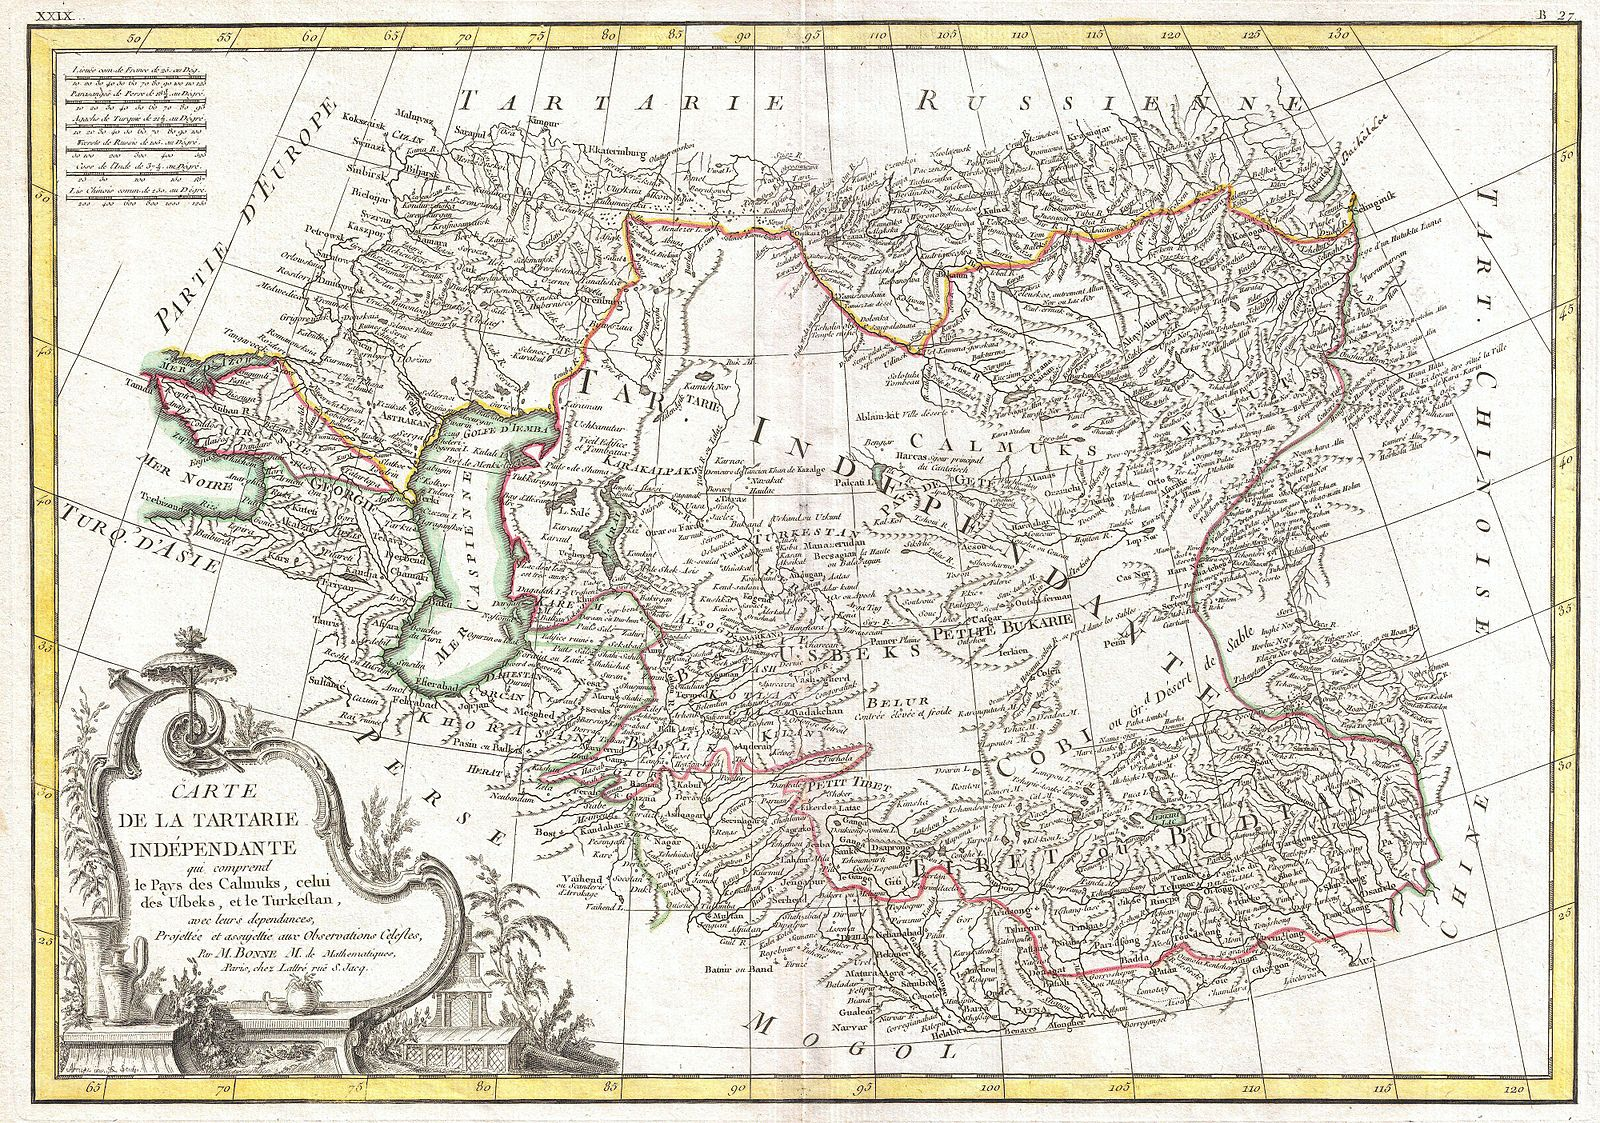 1771_Bonne_Map_of_Central_Asia_-_Geographicus_-_Tartarie-bonne-1770.jpg